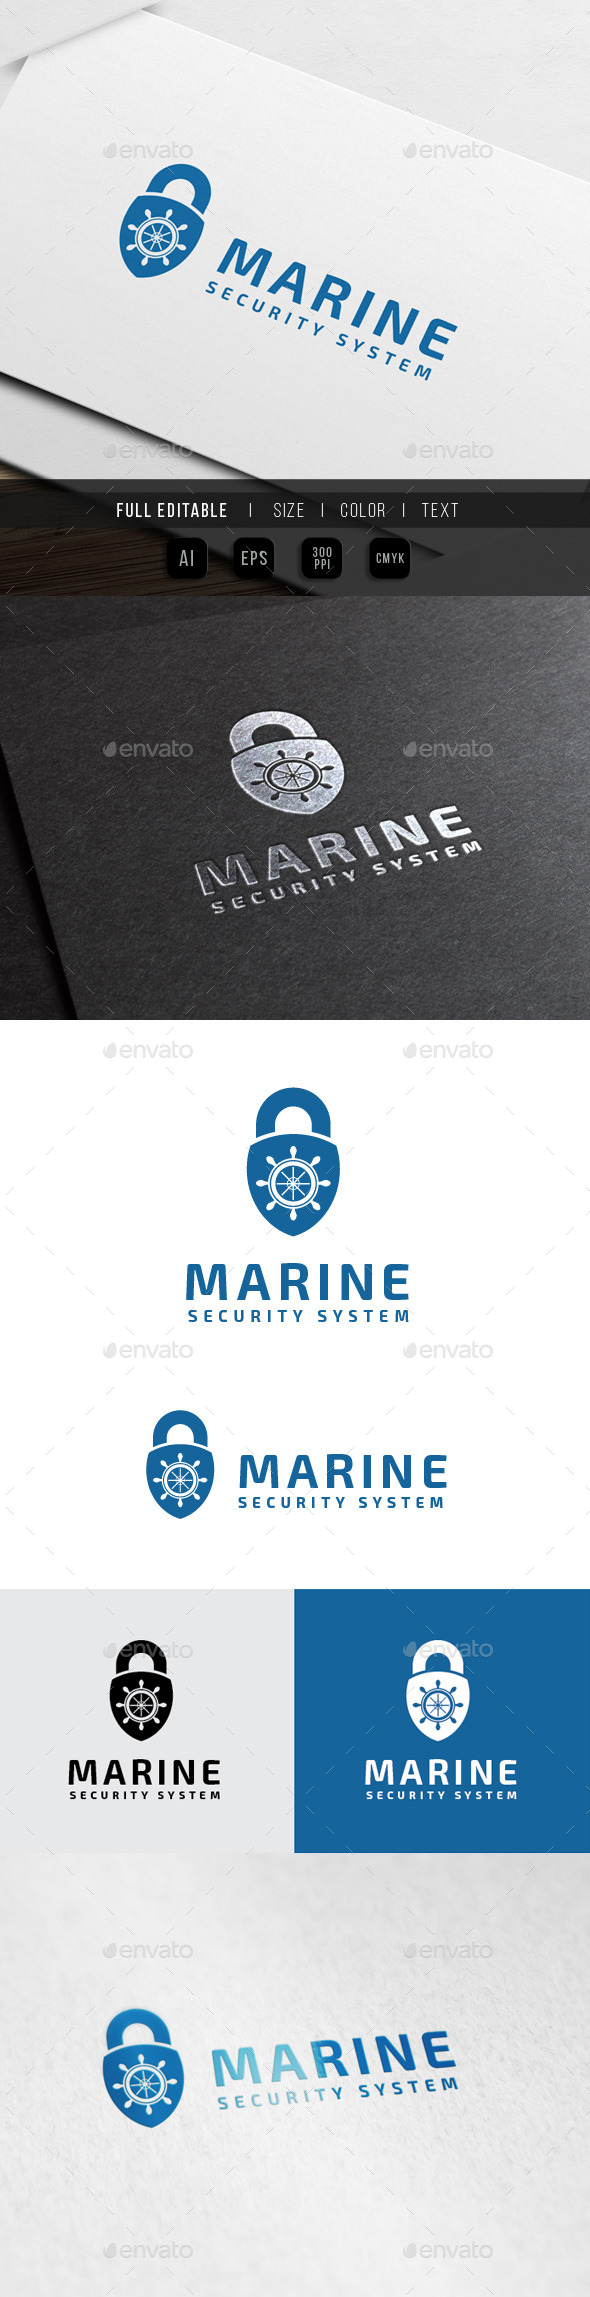 Marine Security System